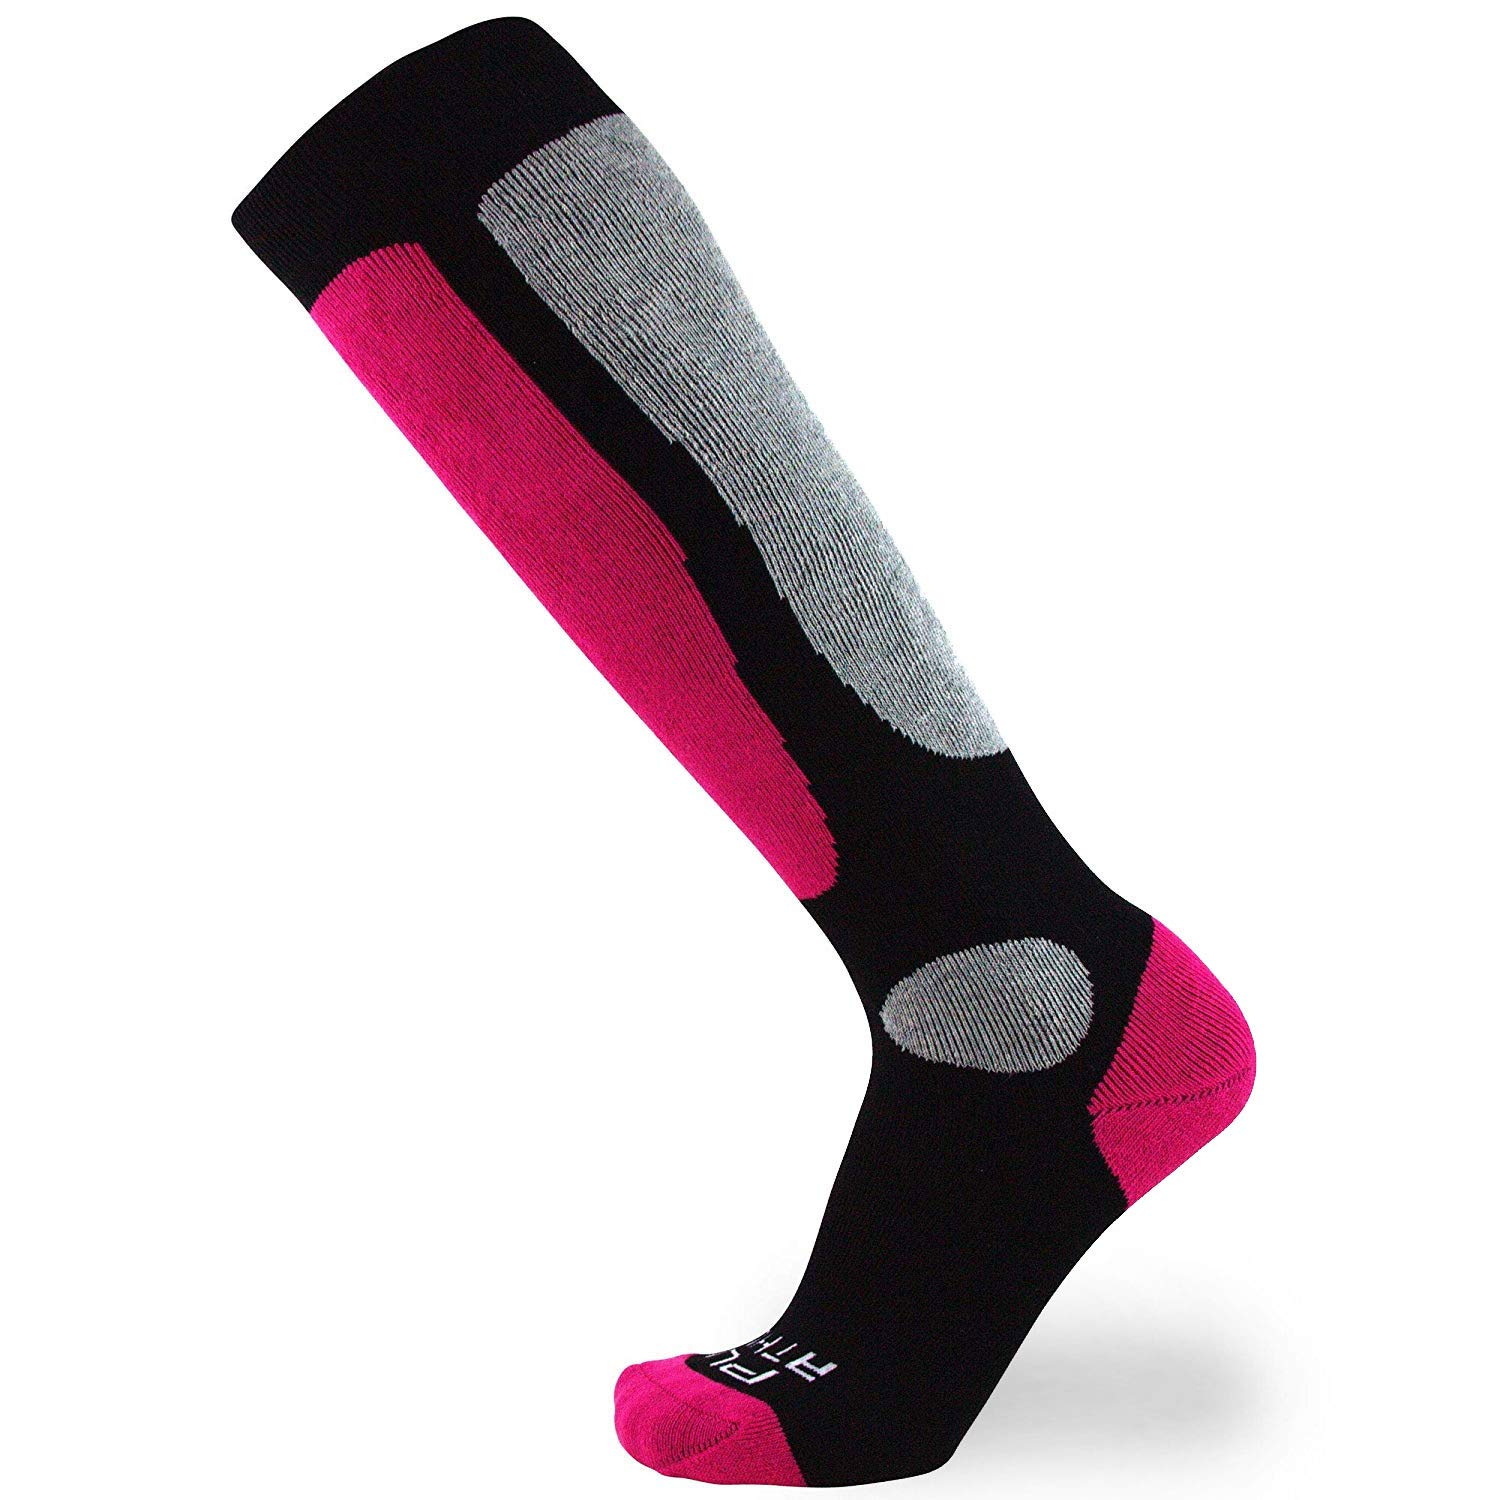 Value Ski Socks for Men and Women - Snowboarding, Winter, Cold Weather (S/M, 1 Pair - Neon Pink) by Pure Athlete